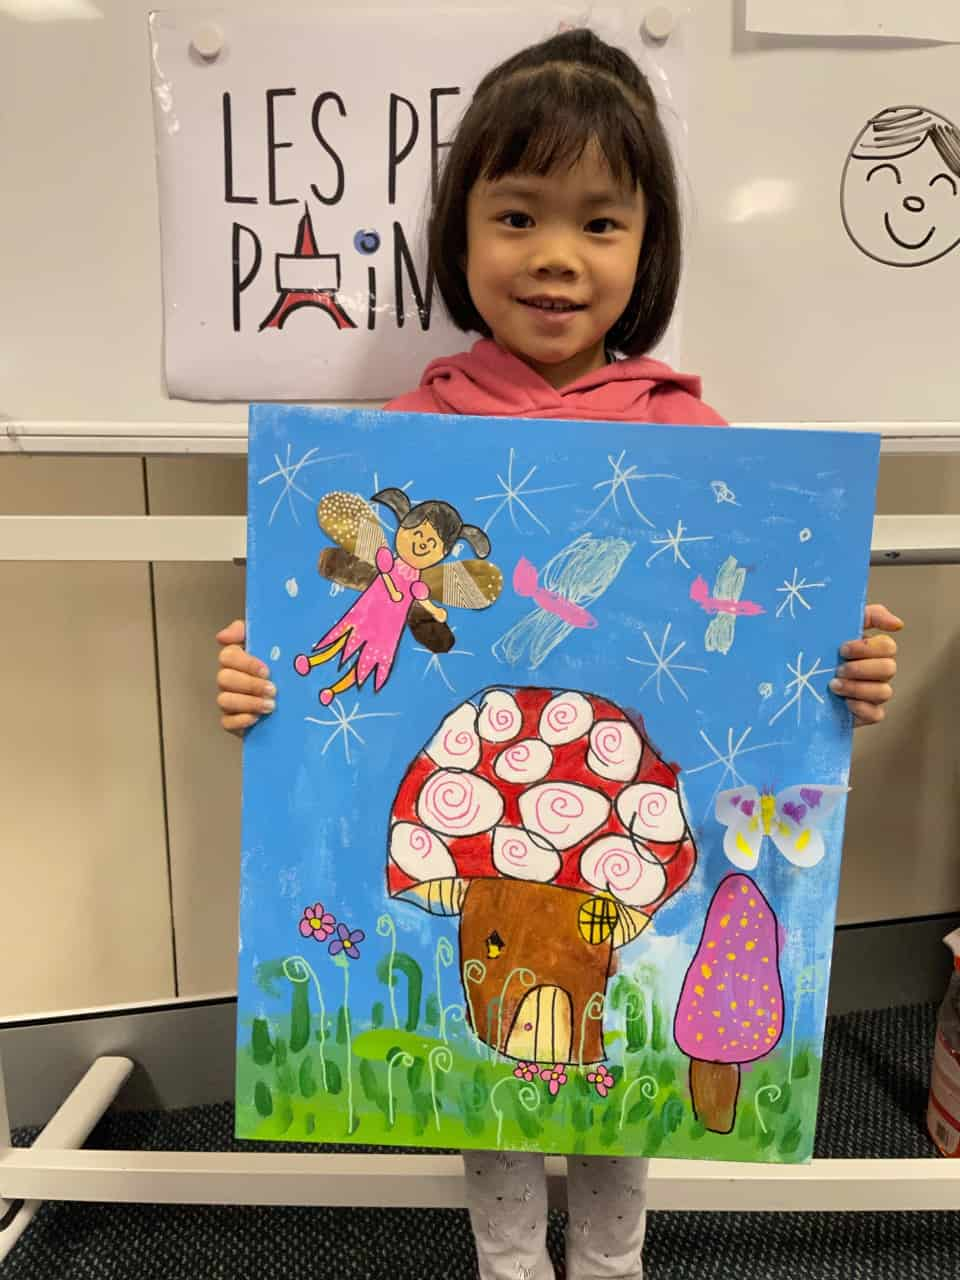 Les Petits Painters art classes for preschoolers, kids art activities, fairy and toadstool home painting